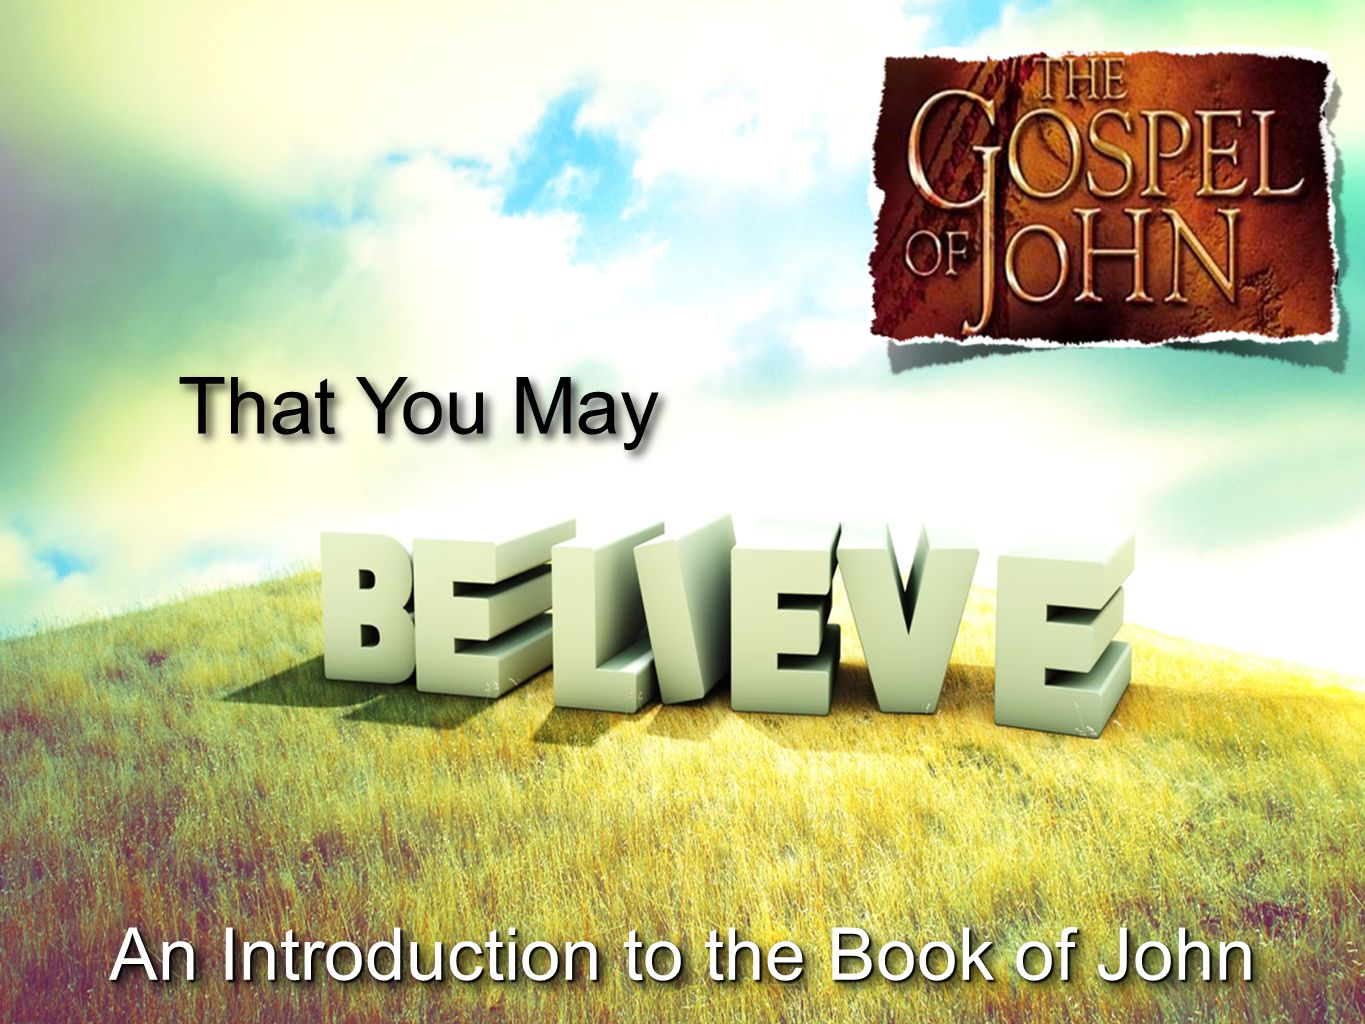 That You May An Introduction to the Book of John